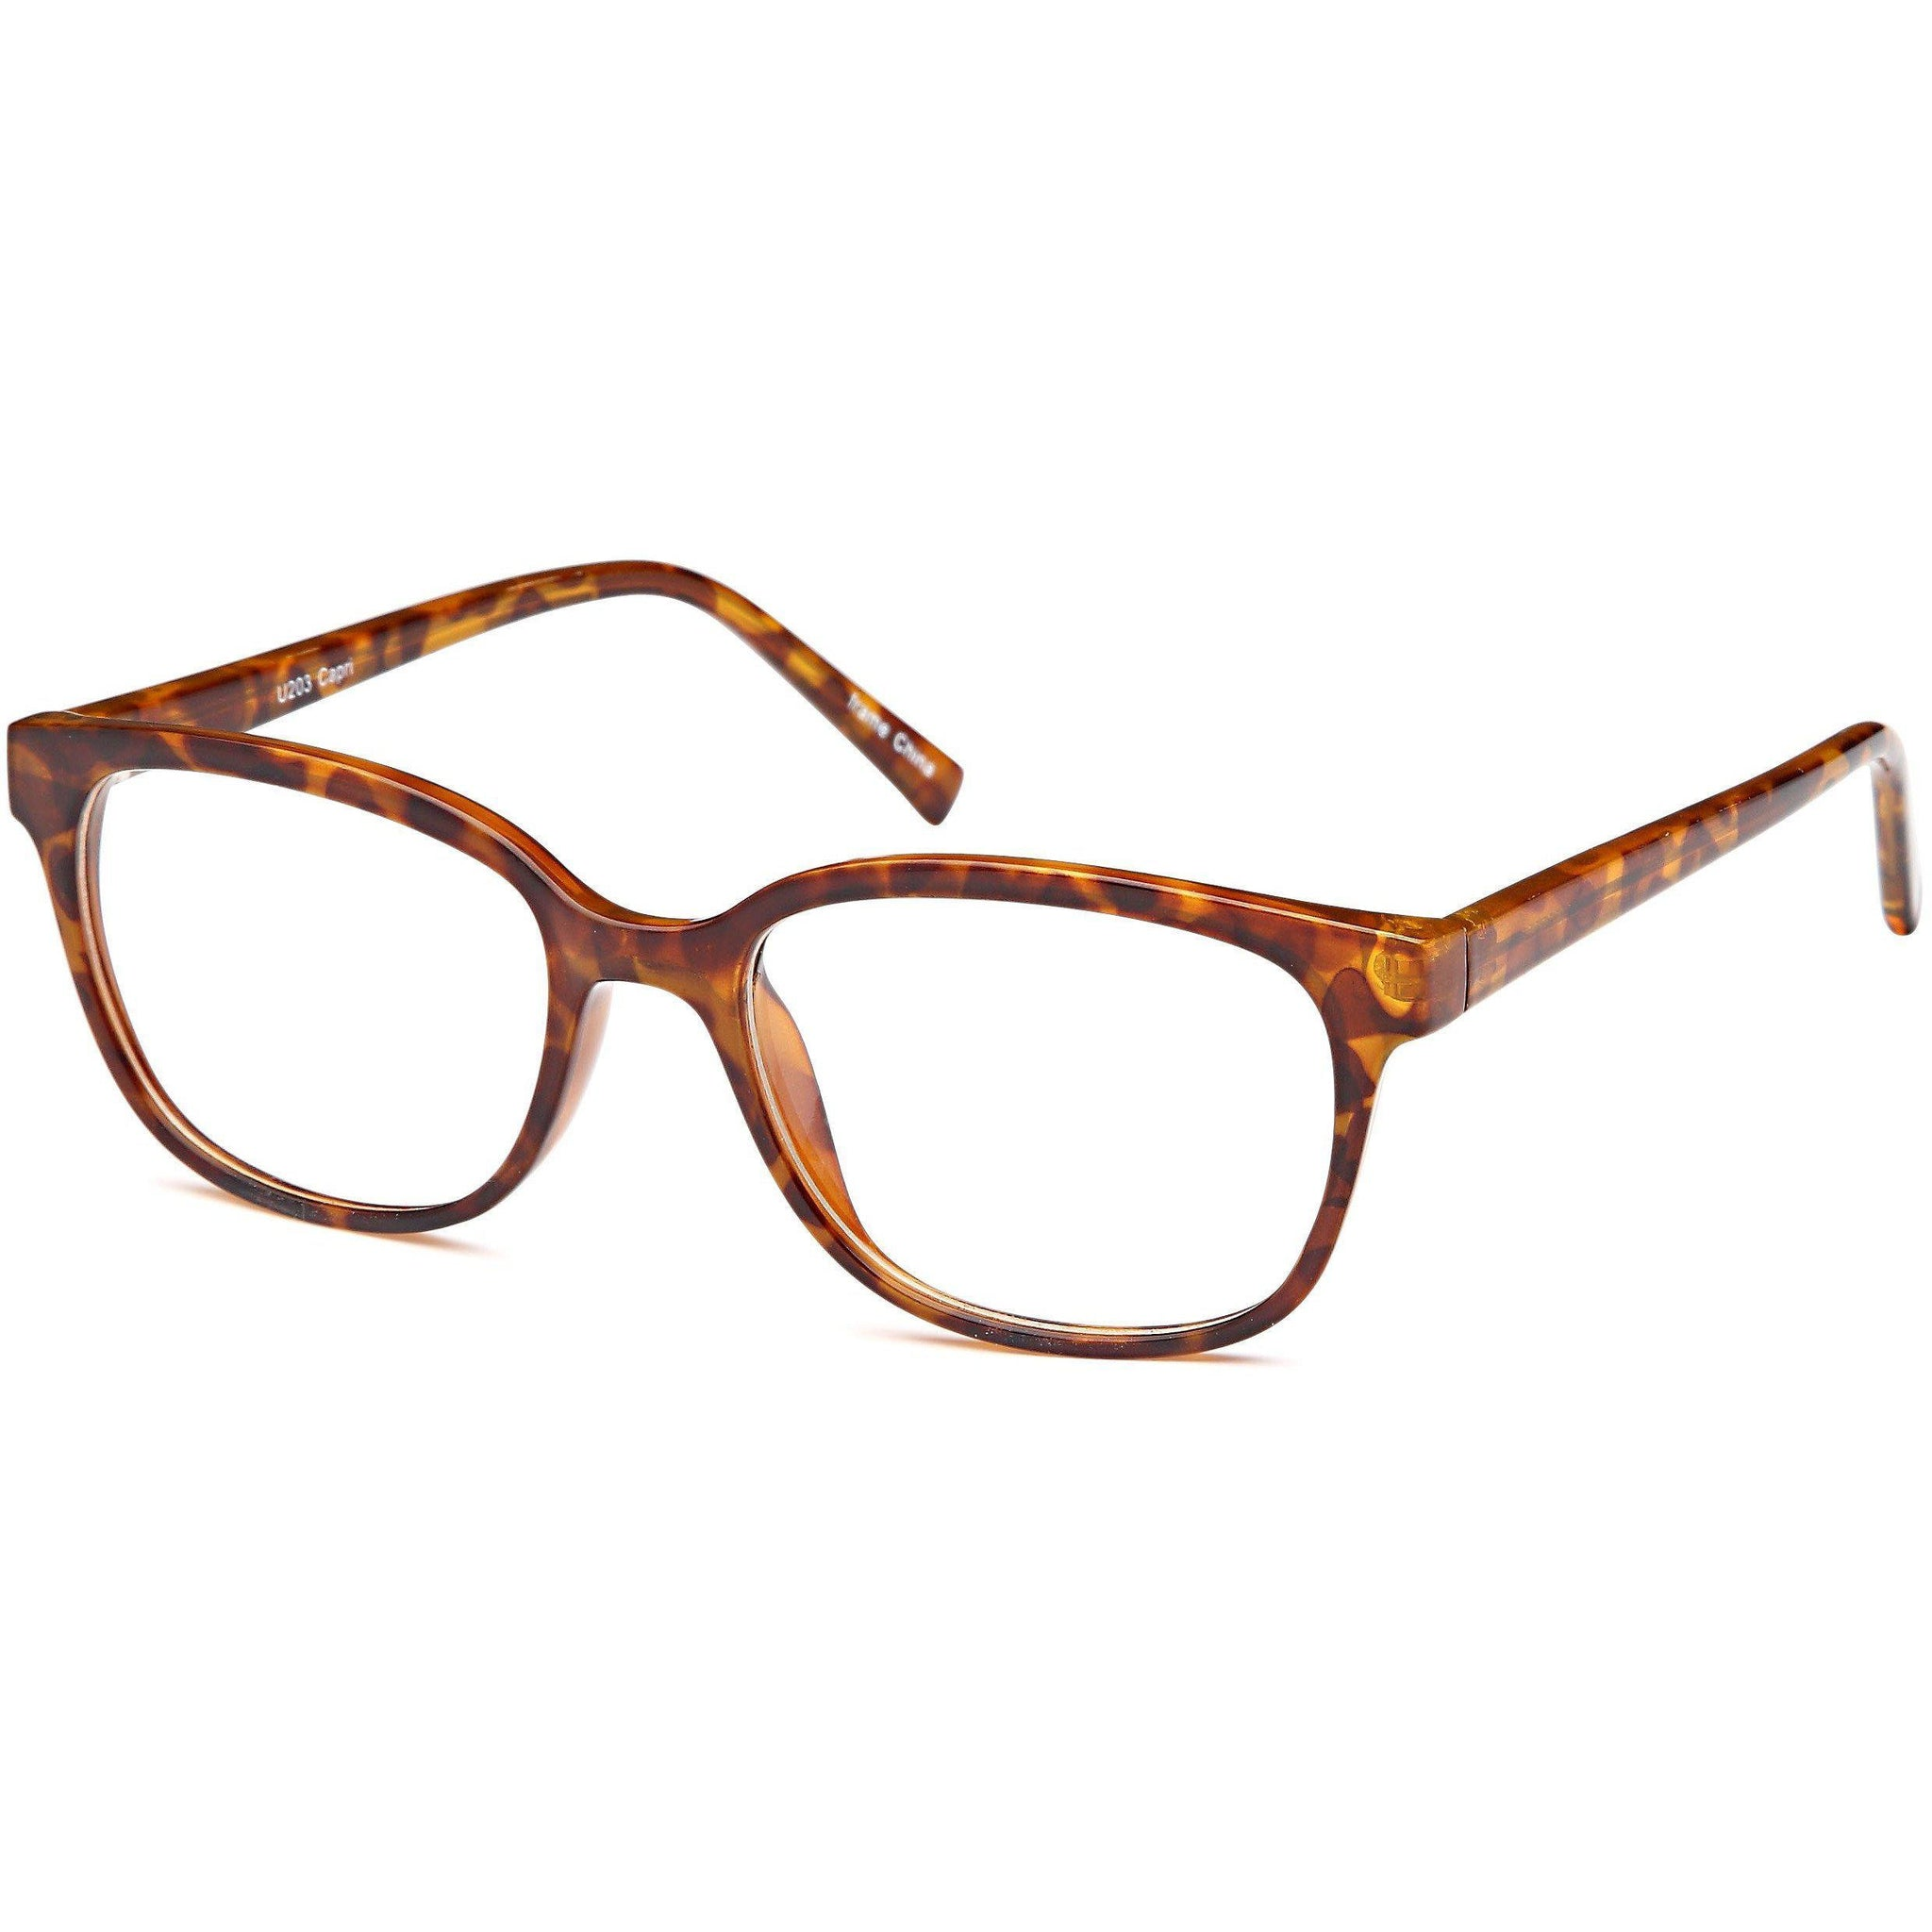 Hammersmith by The Square Mile Prescription Eyeglasses Frame - timetoshade